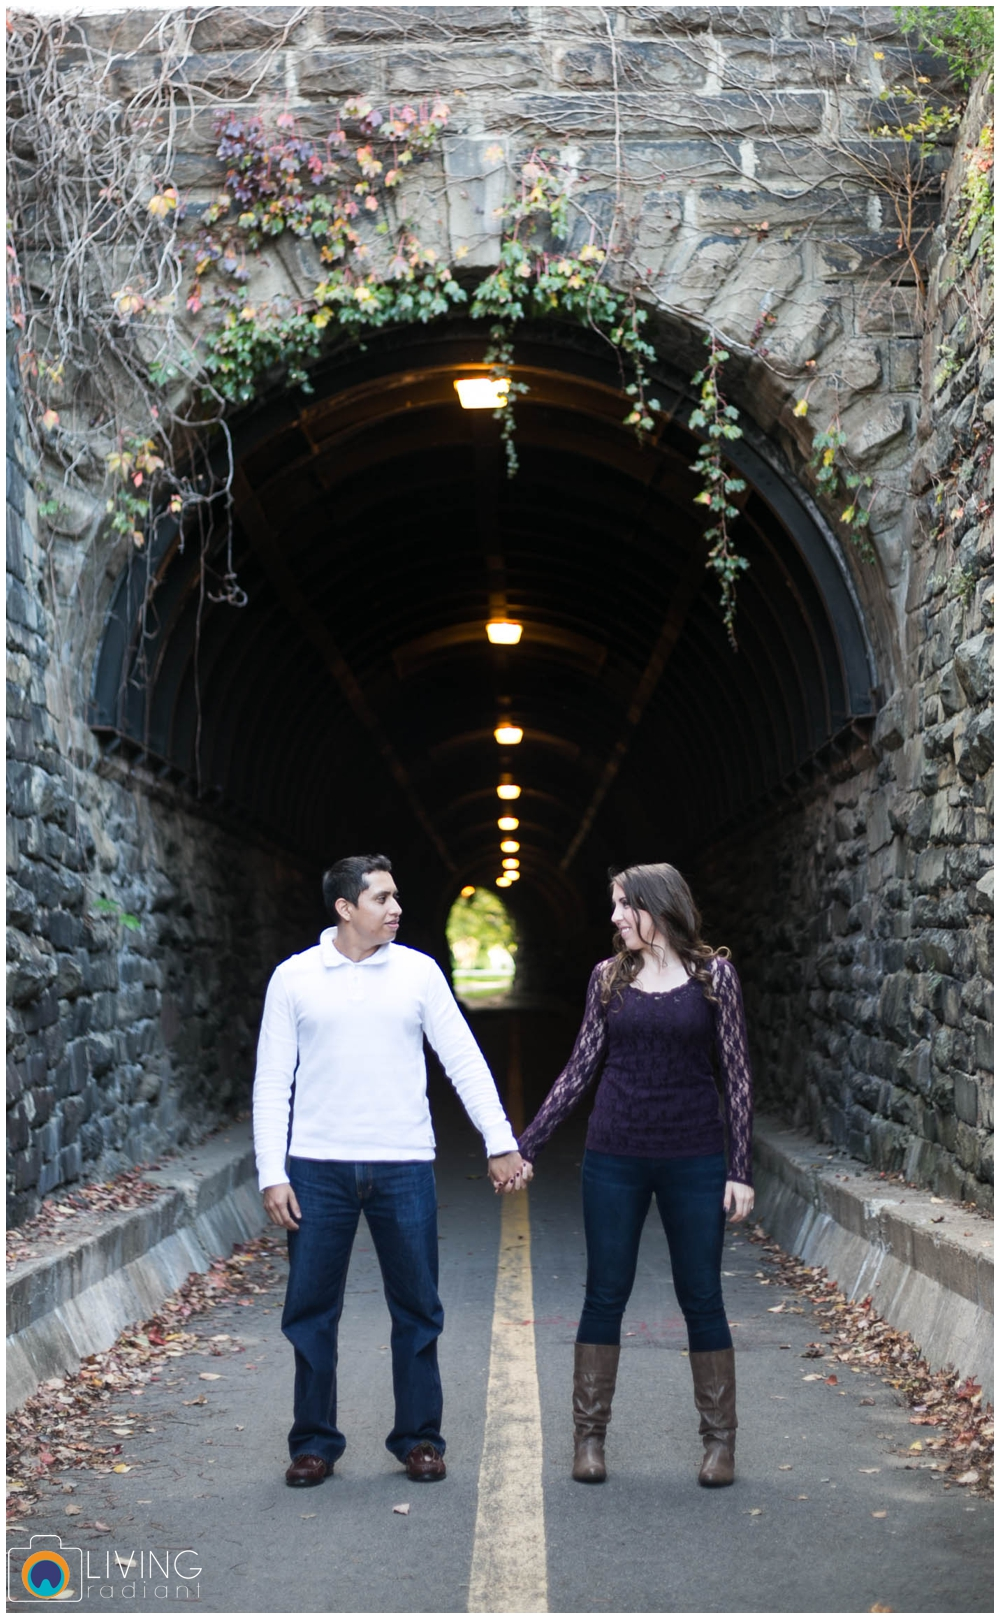 mario+allison-engaged-alexandria-virginia-engagement-weddings-outdoors-living-radiant-photography_0009.jpg